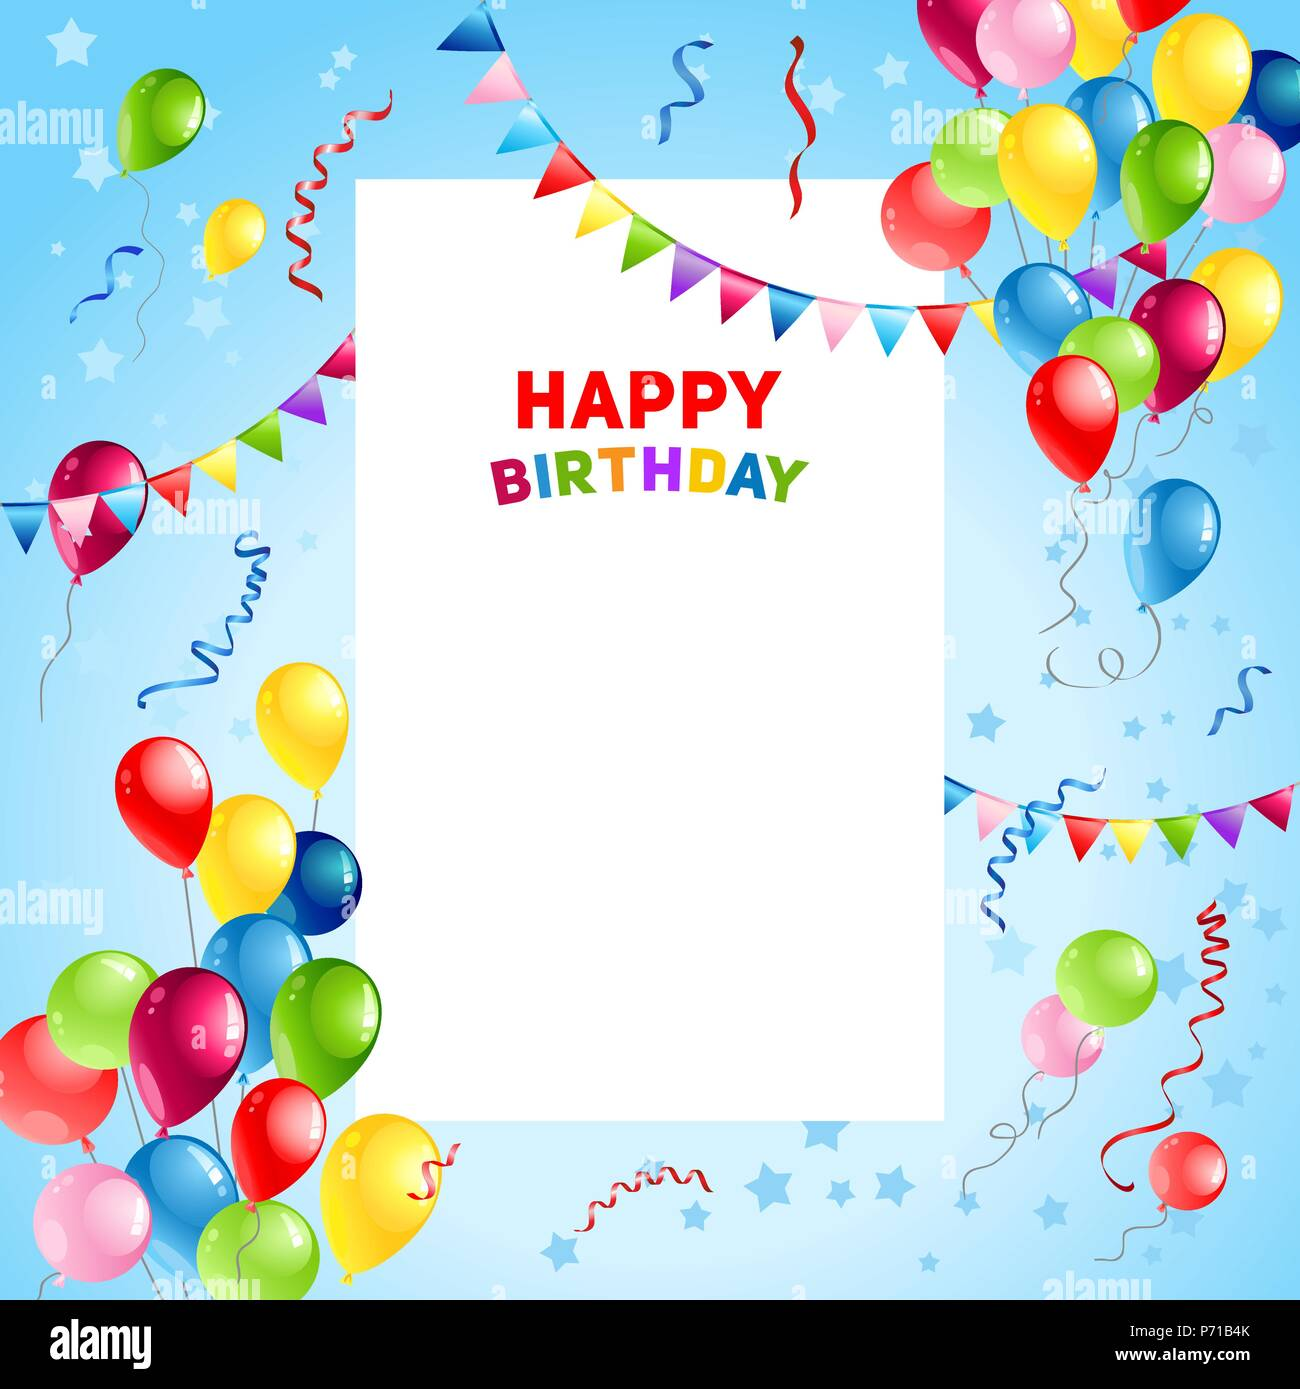 Balloons Happy Birthday Card Template Stock Vector Art